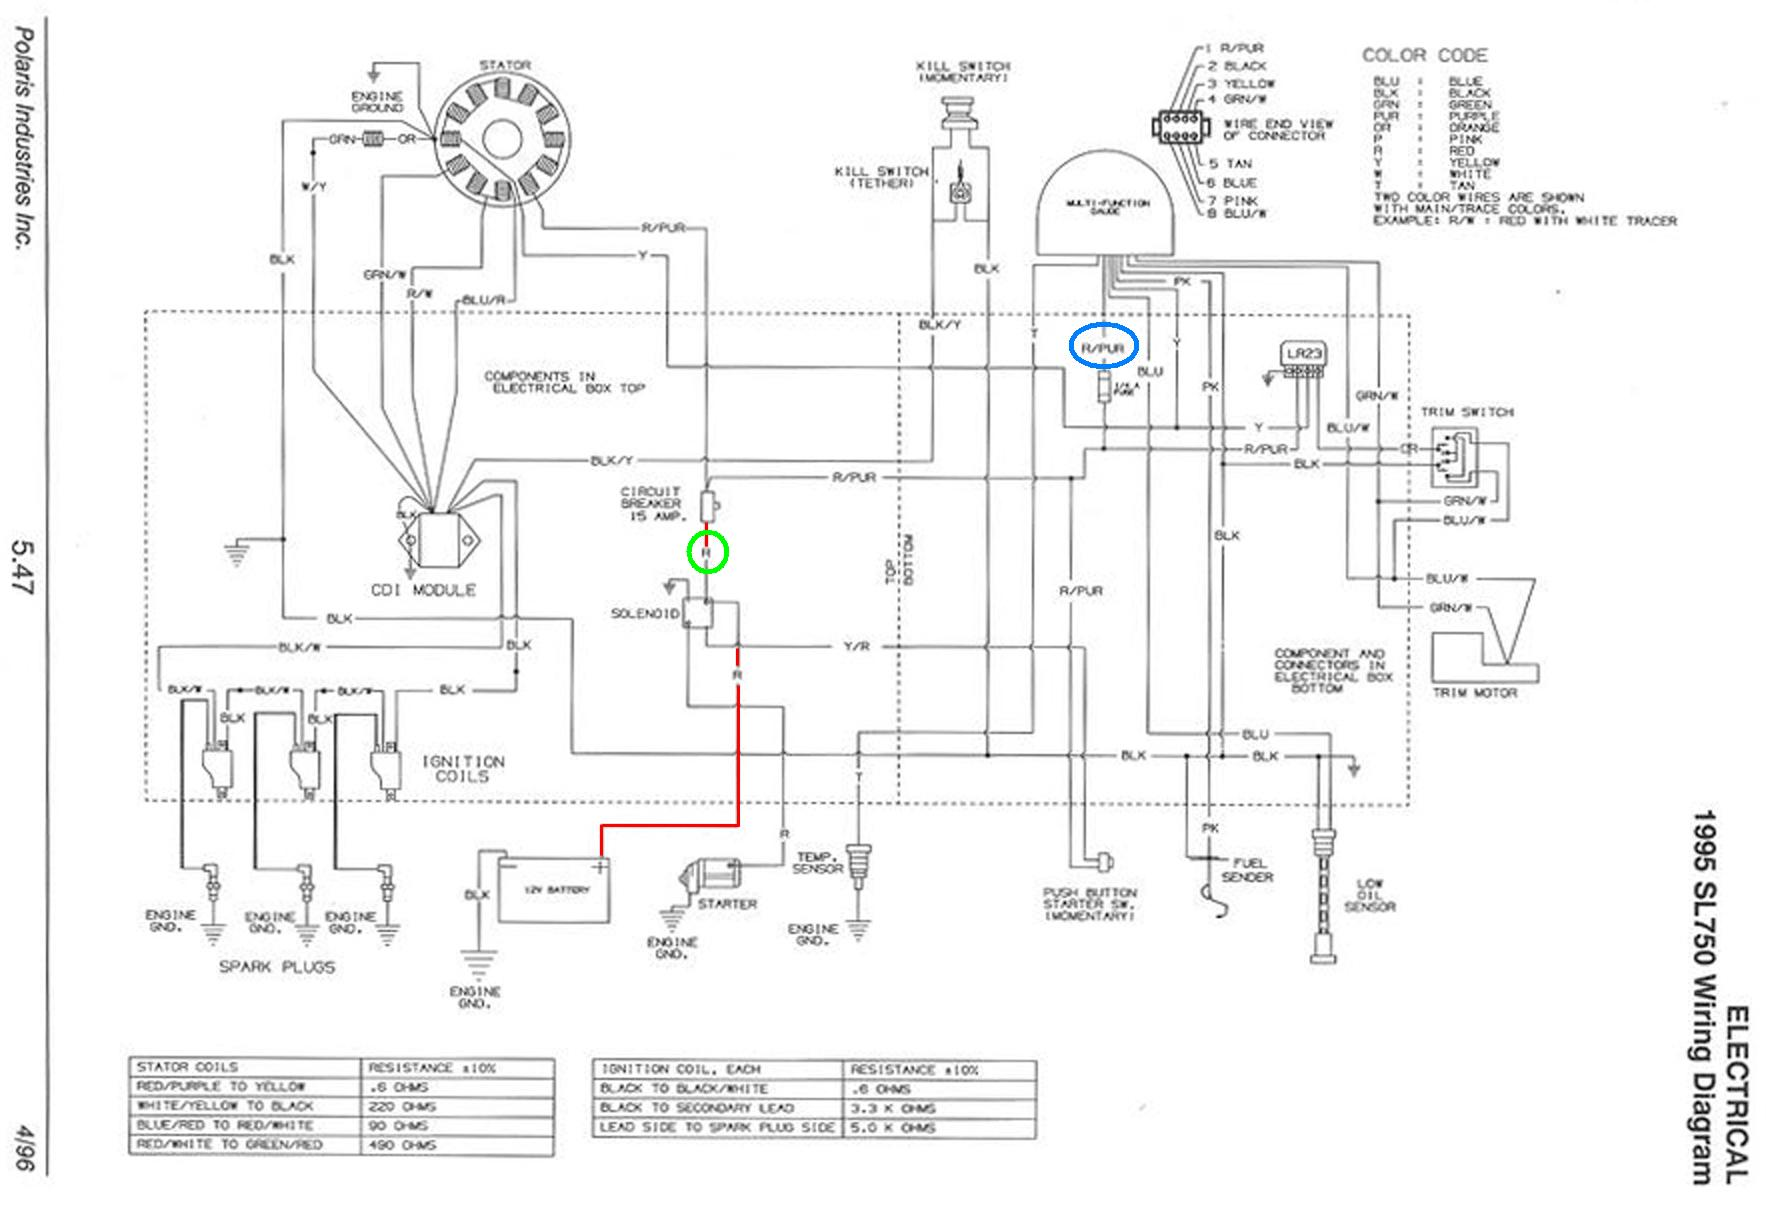 diagrams wiring   schematic diagram for ski doo snowmobile